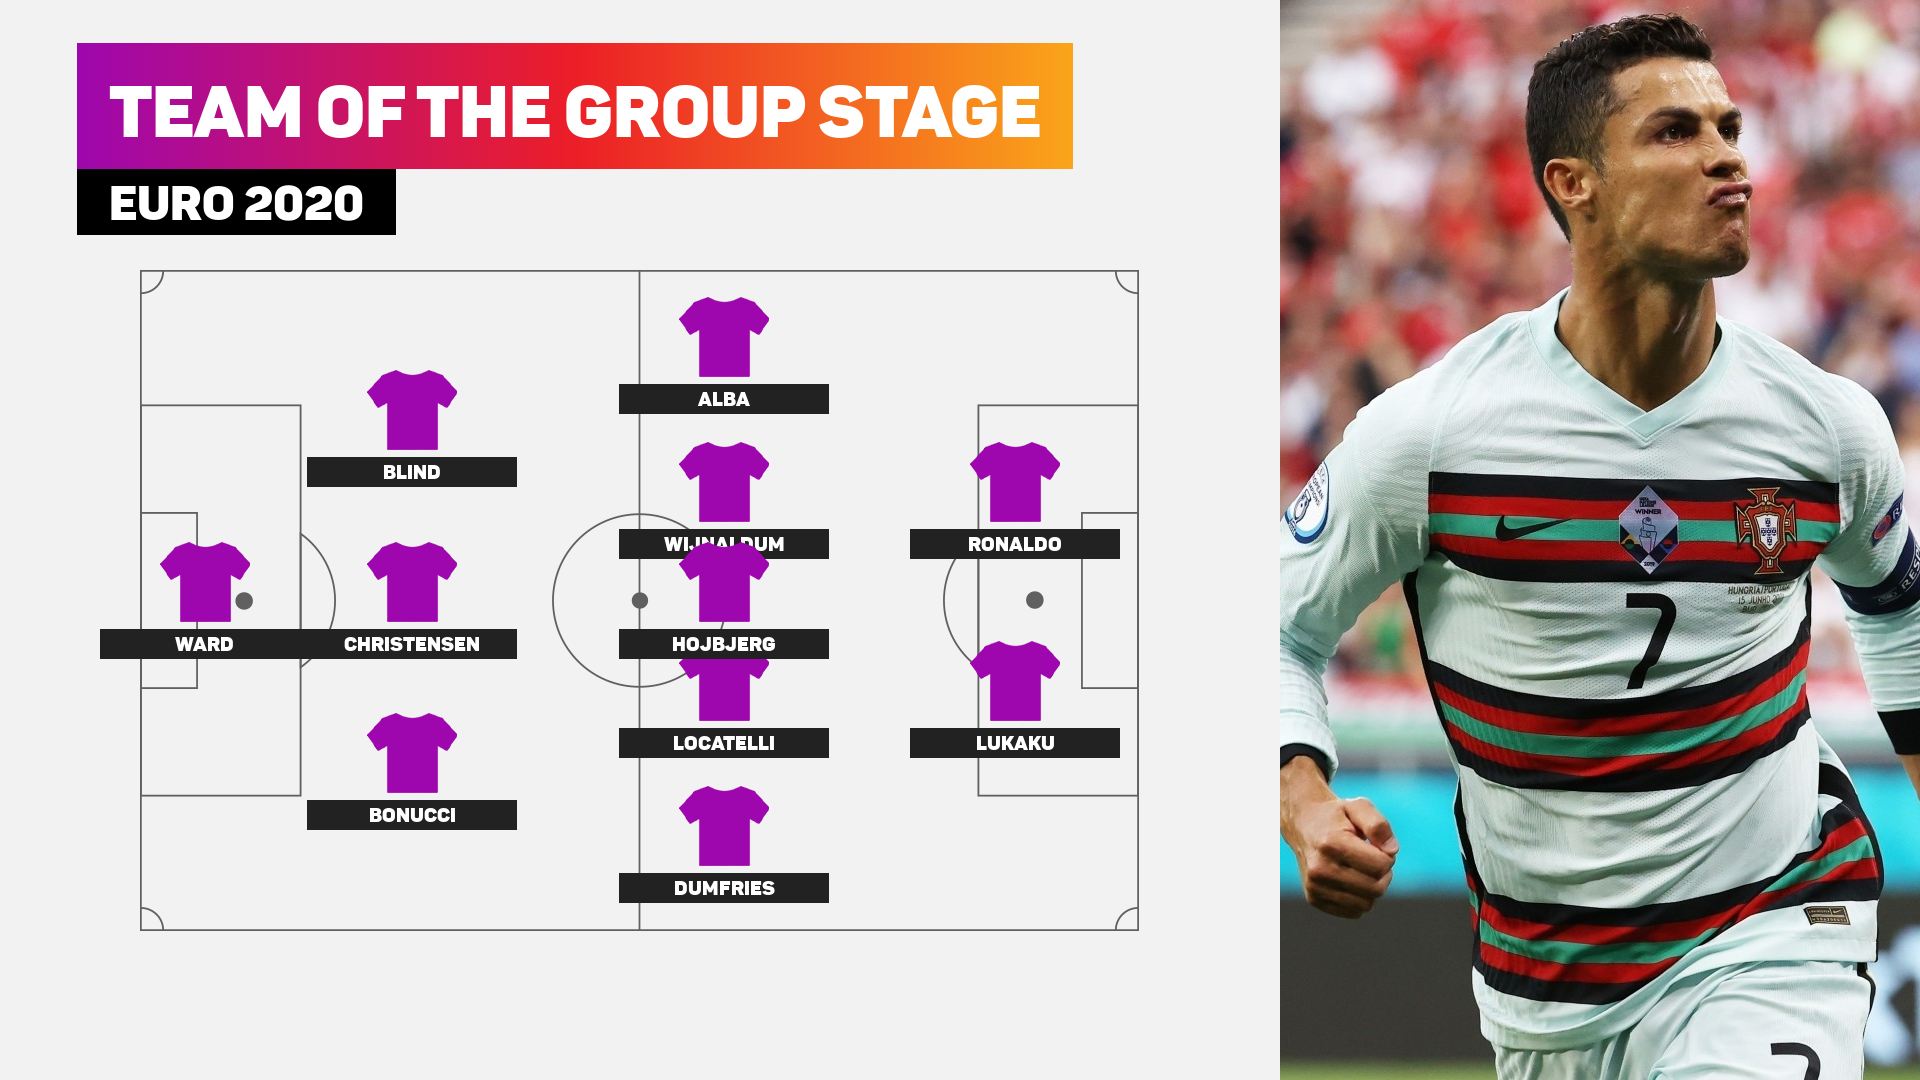 Euro 2020 team of the group stage